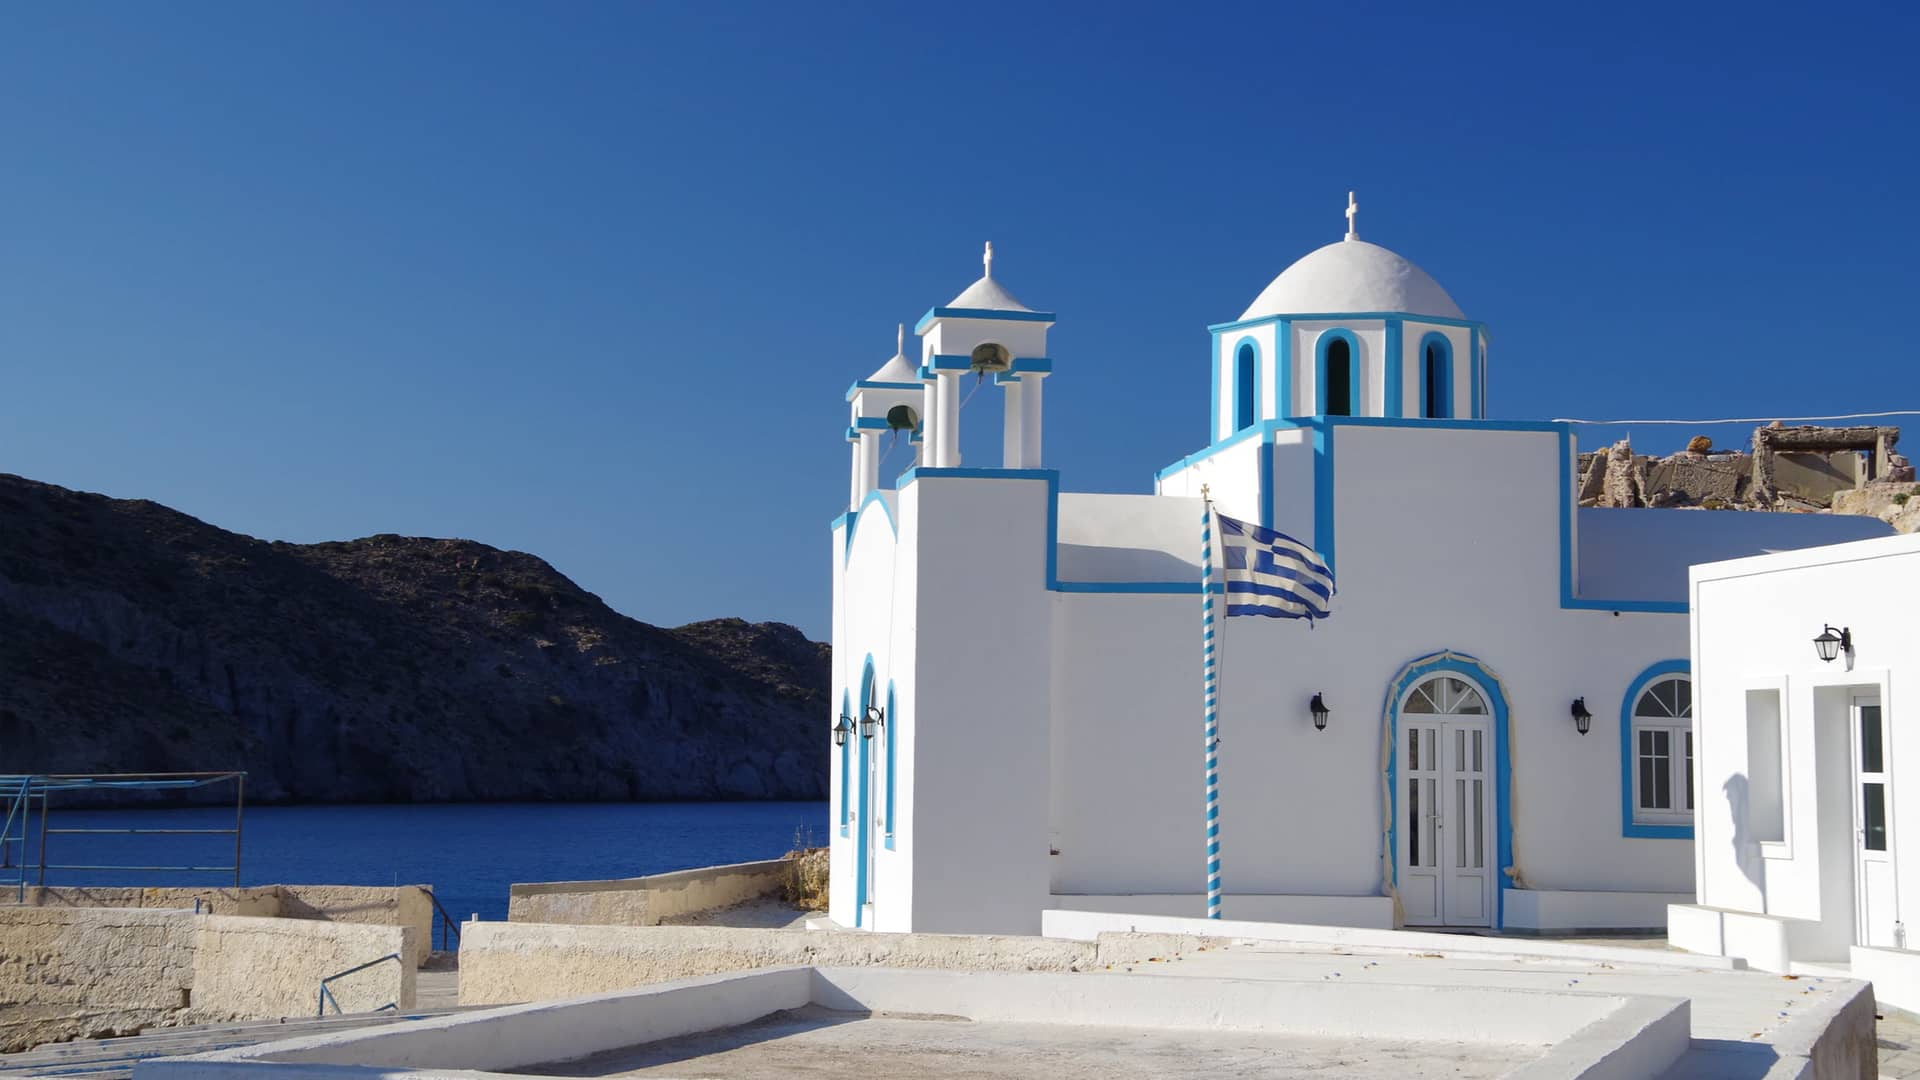 Picturesque landscape and church in Milos